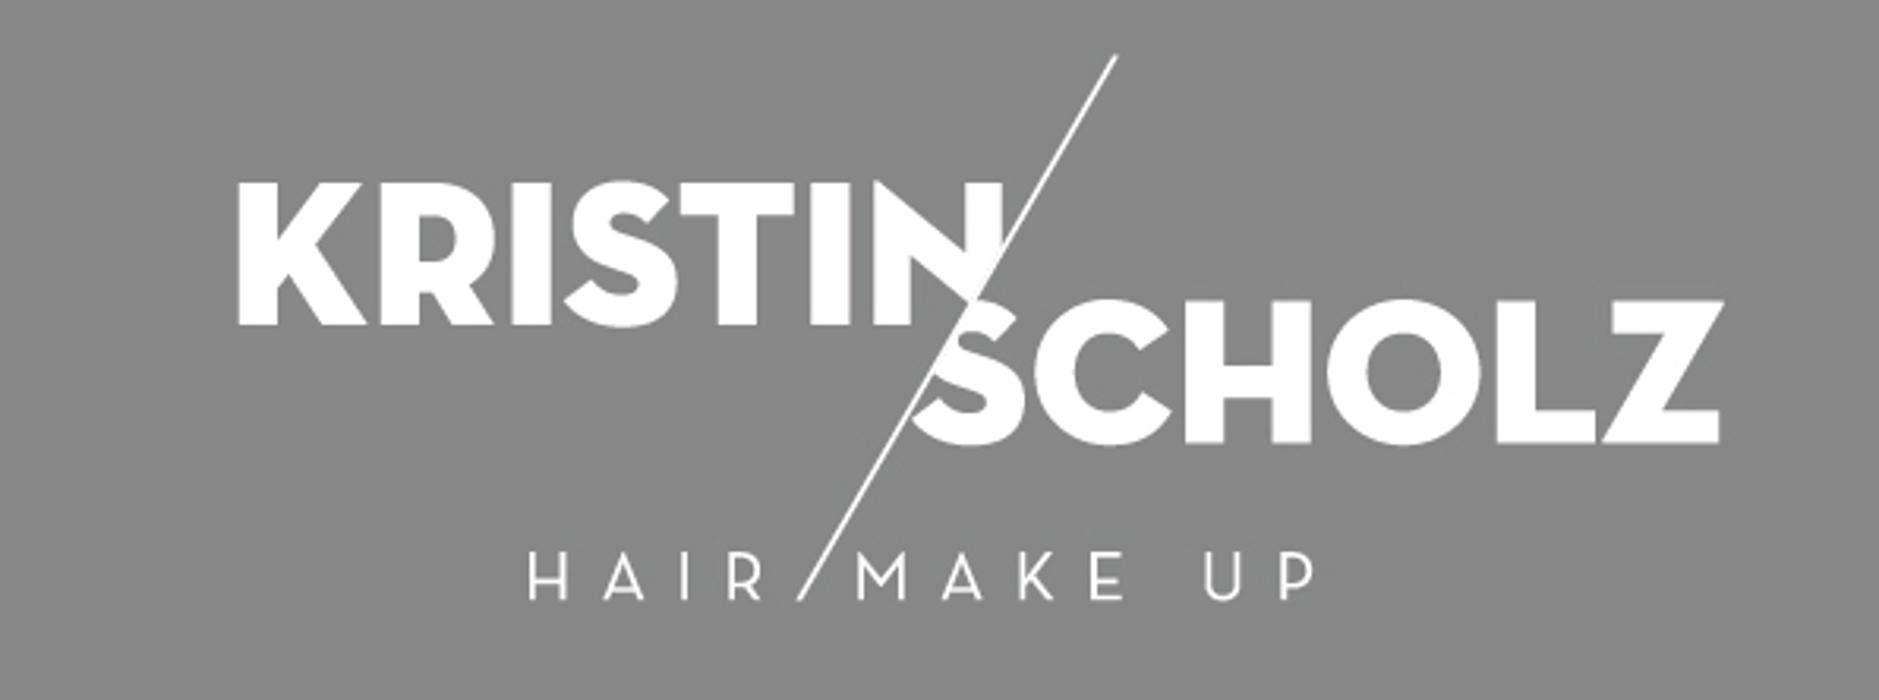 Kristin Scholz Hair And Make Up